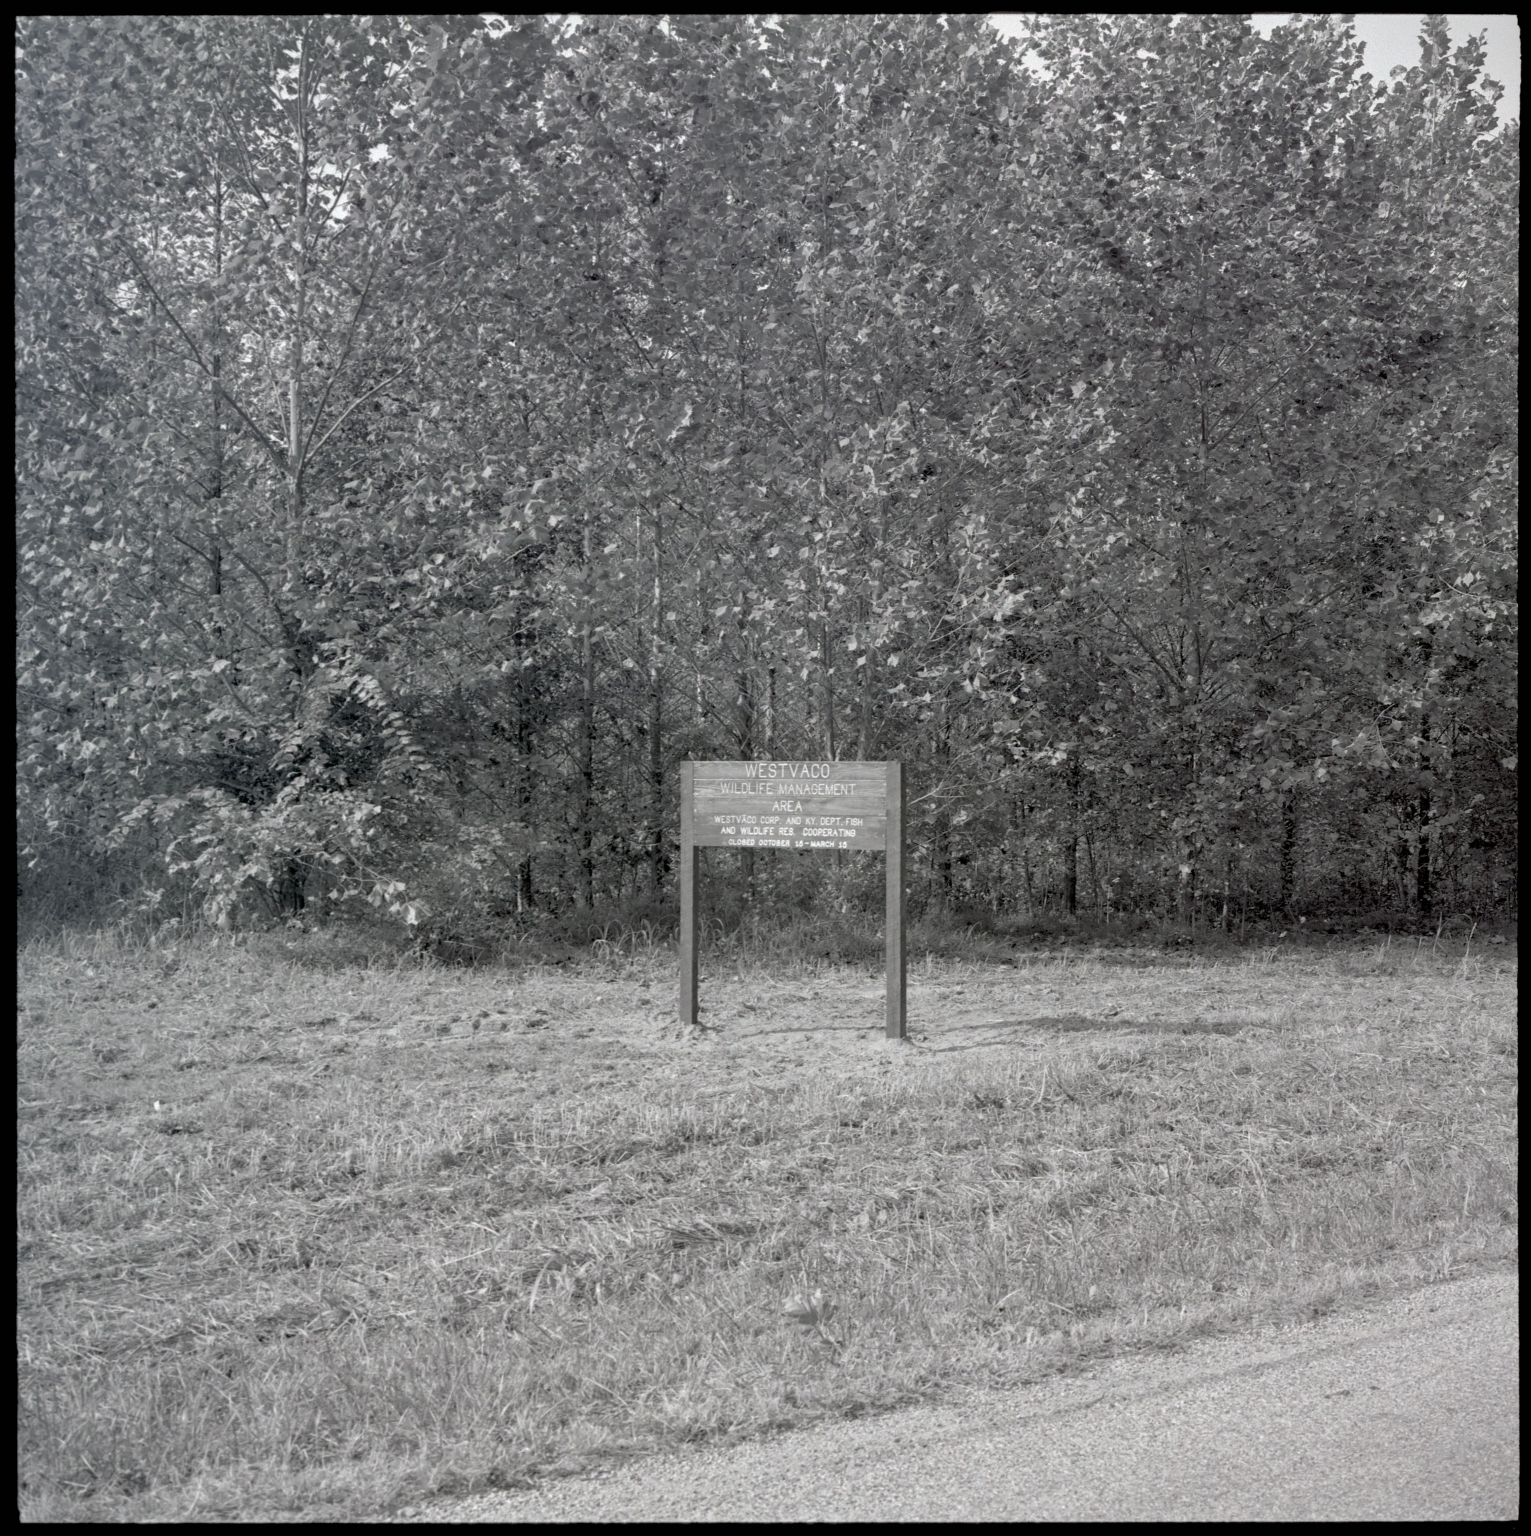 Photograph of the Westvaco Wildlife Management Area.